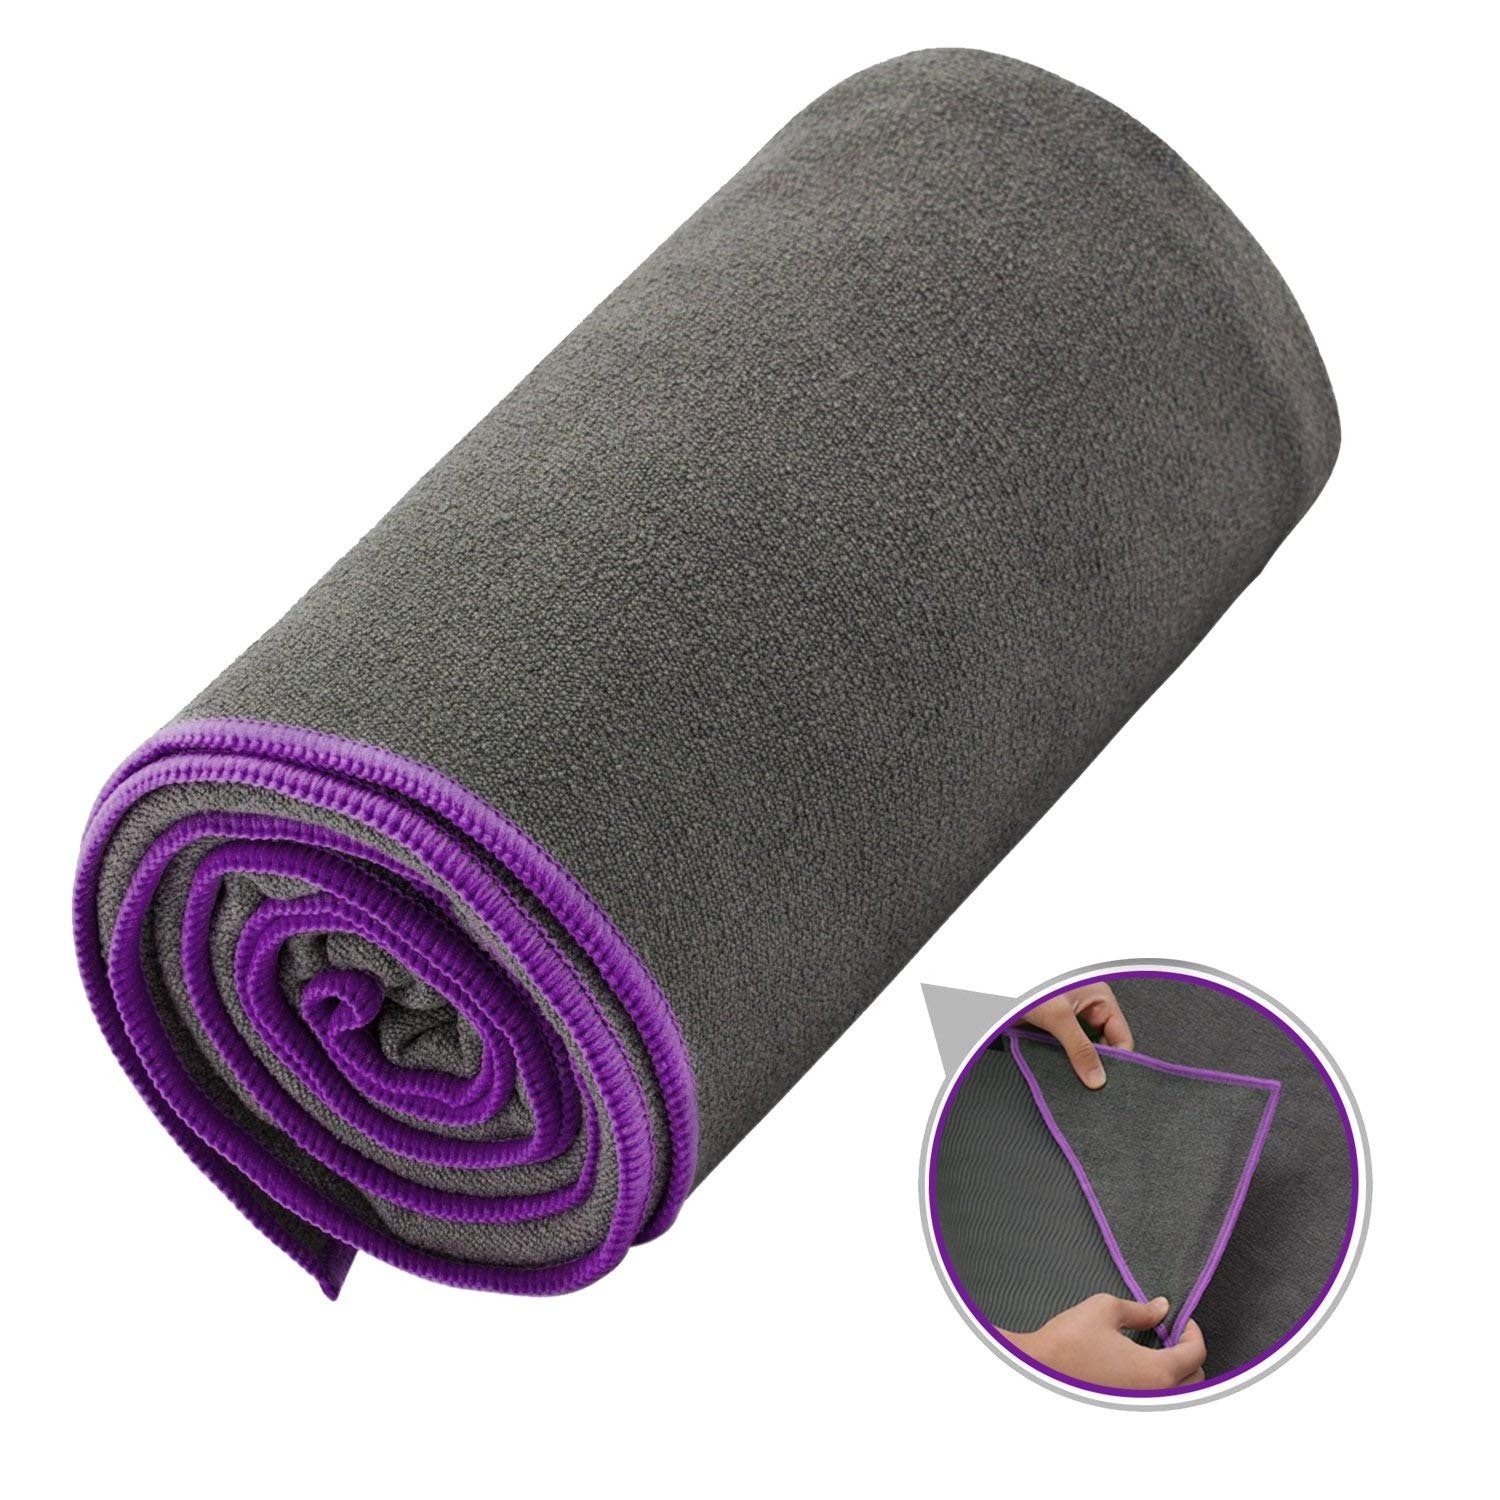 The 7 Best Yoga Towels